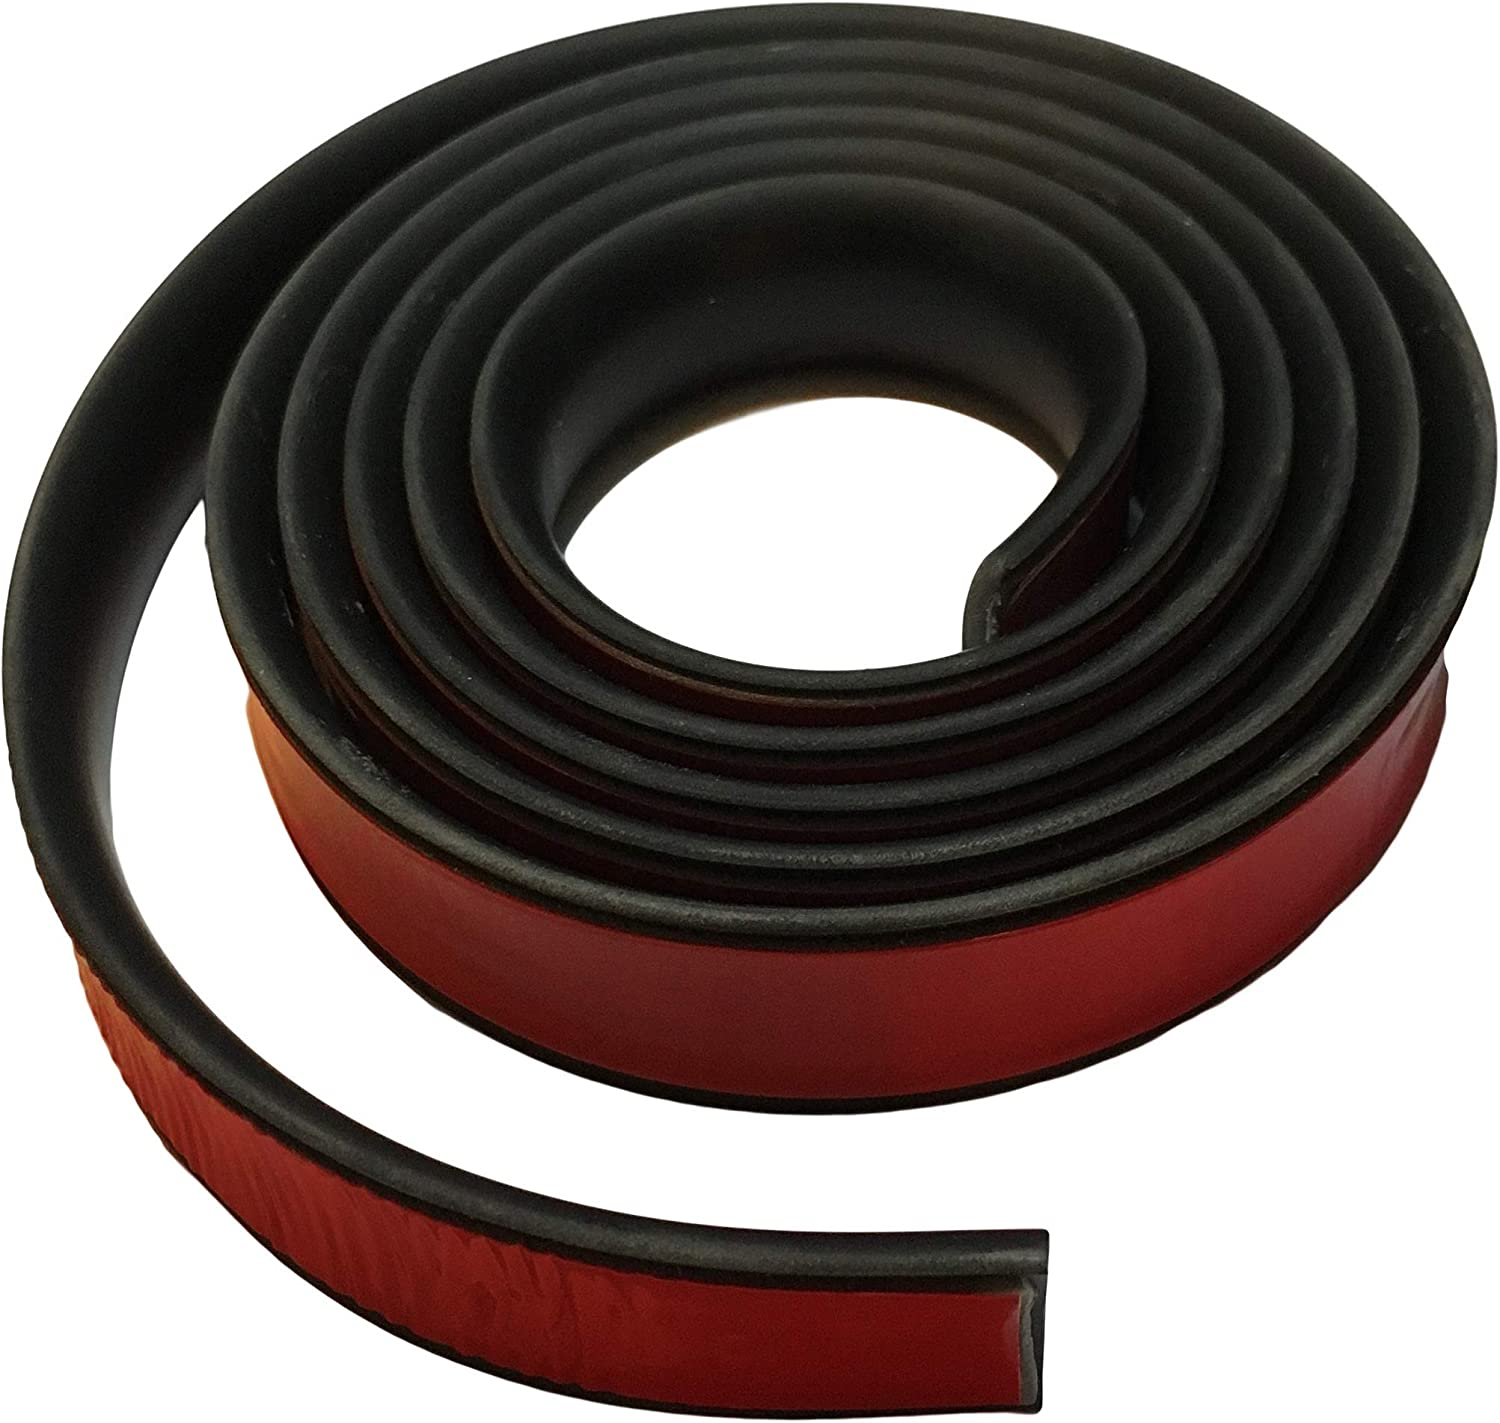 20 ft Partsman Flexible Self-Adhesive Rubber Molding 1 Wide Protective Stripping Trim Edging